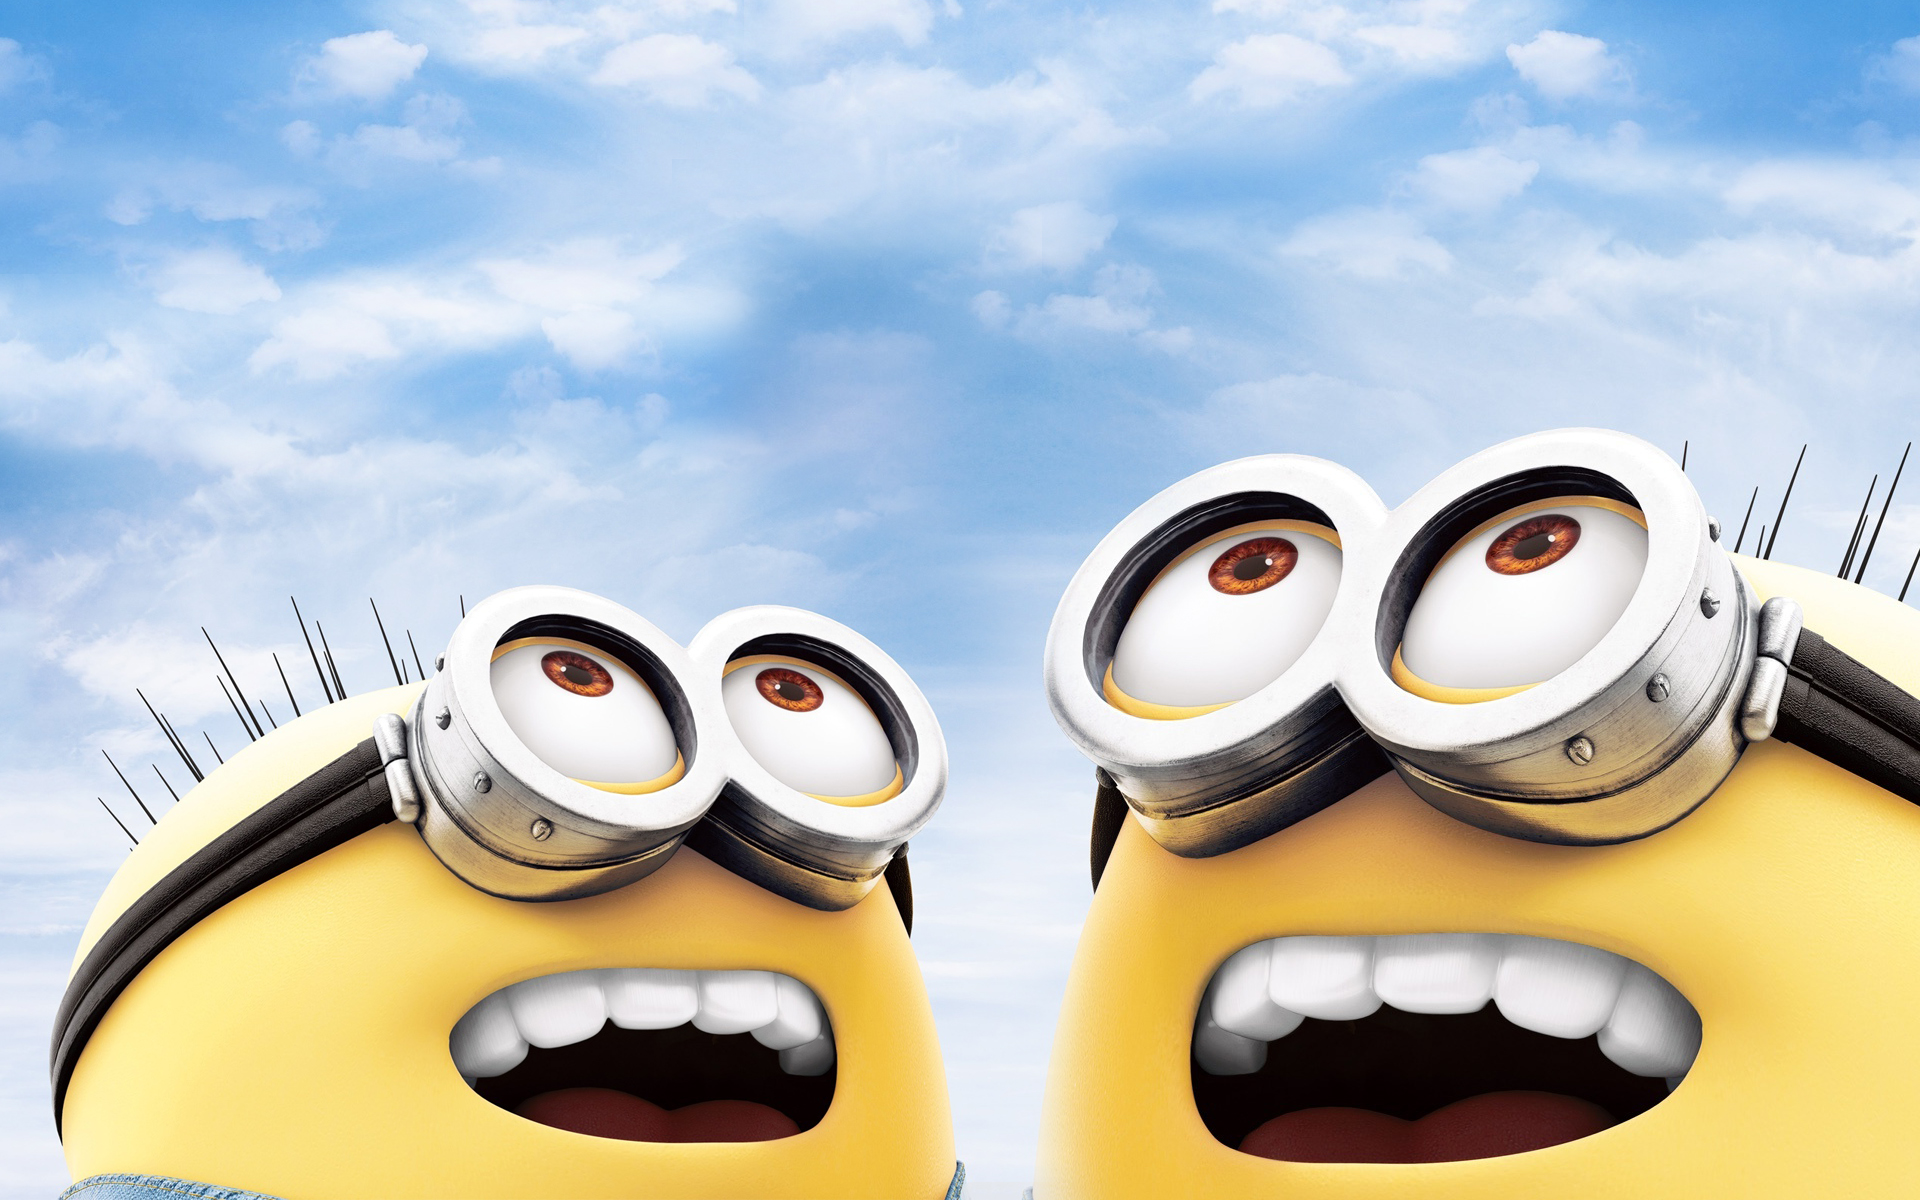 Minion-High-Quality-Resolution-mz-1920x-px-MB-Cartoon-1920x1080-banana-evil-ip-wallpaper-wpc9007671